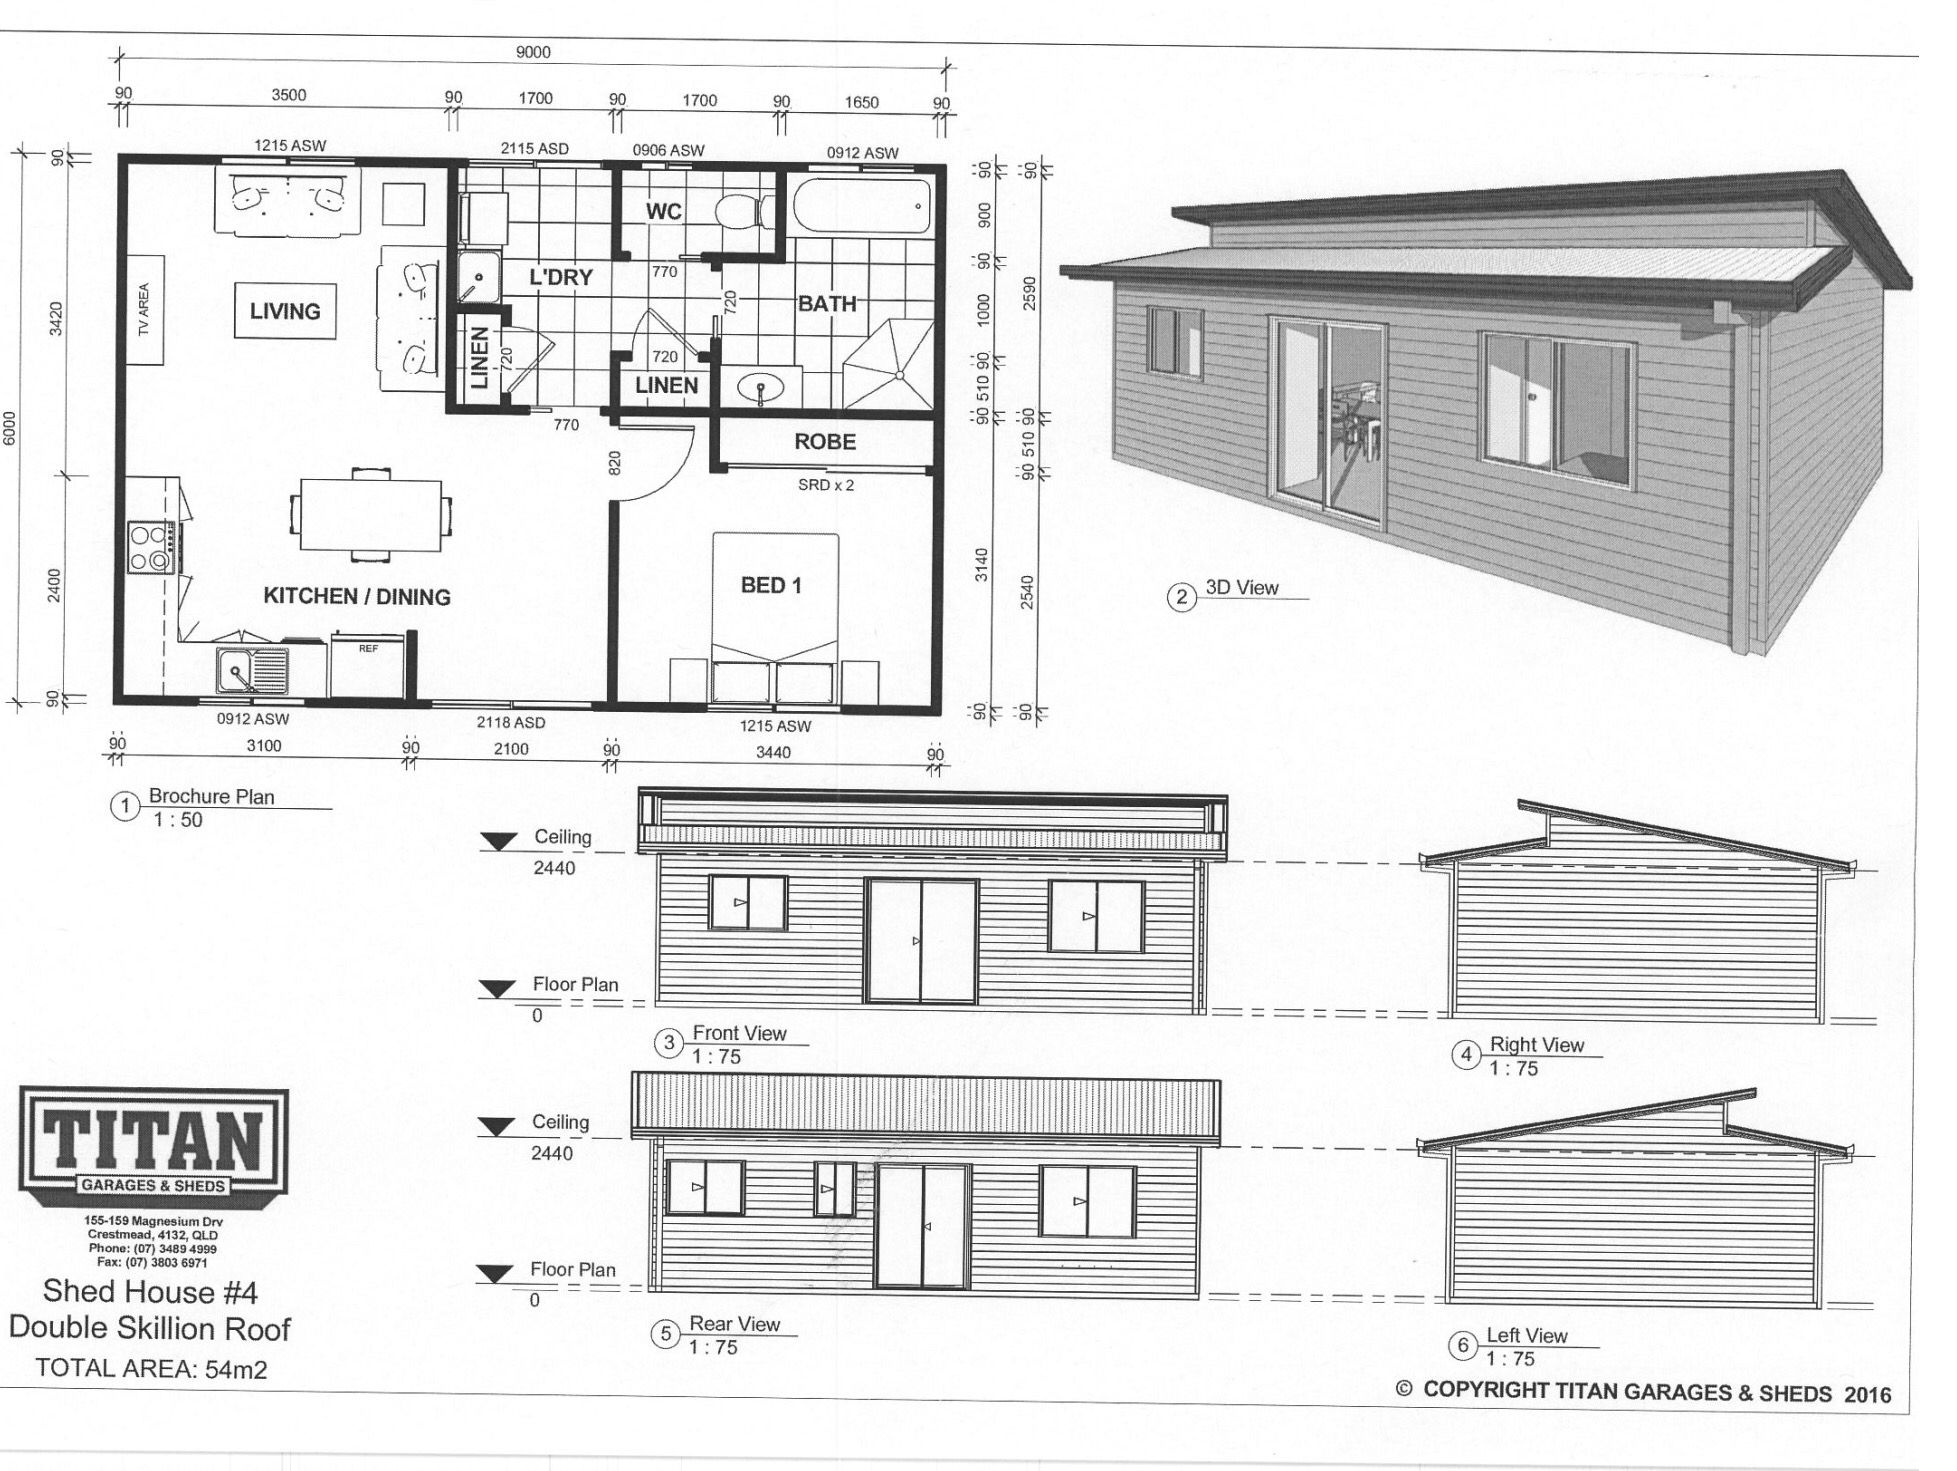 Titan Homes #4 Double Skillion Roof 54m2 www.titangaragesandsheds ...